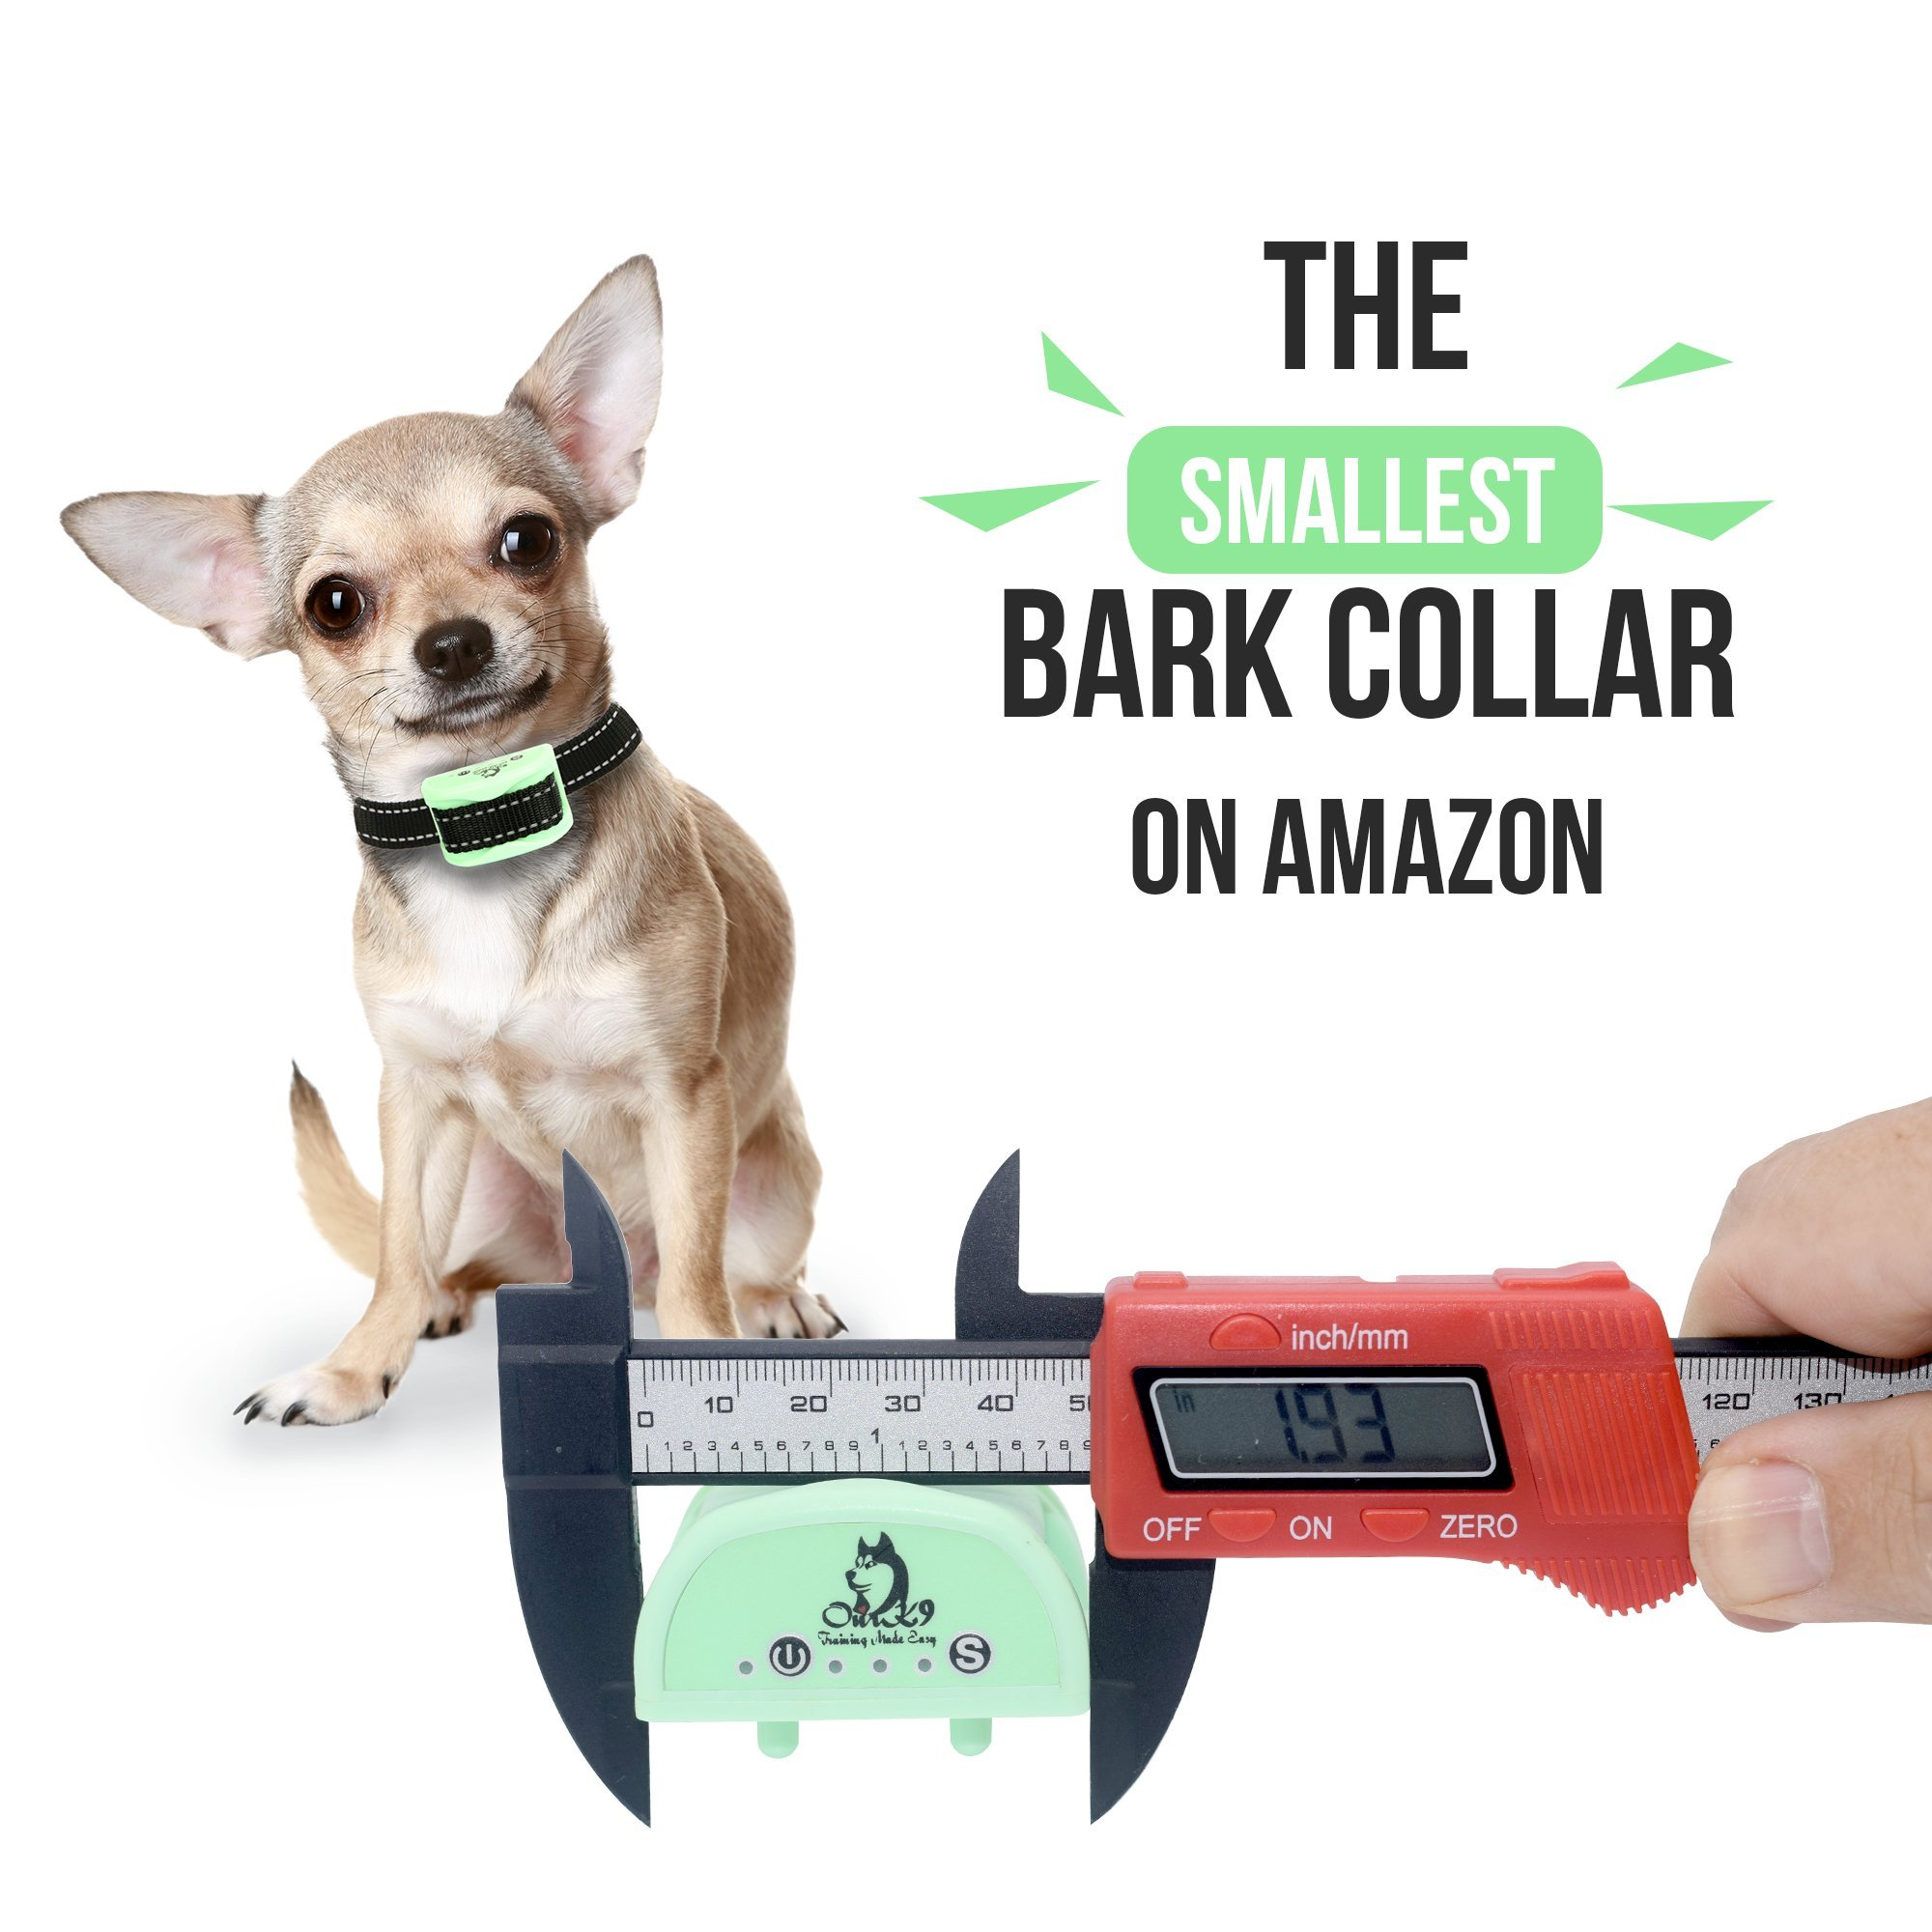 Our K9 Training Made Easy Vibration Bark Collar  for  Small Dogs -  No  Shock,  Pain Free  Control Device by Our K9 Training Made Easy